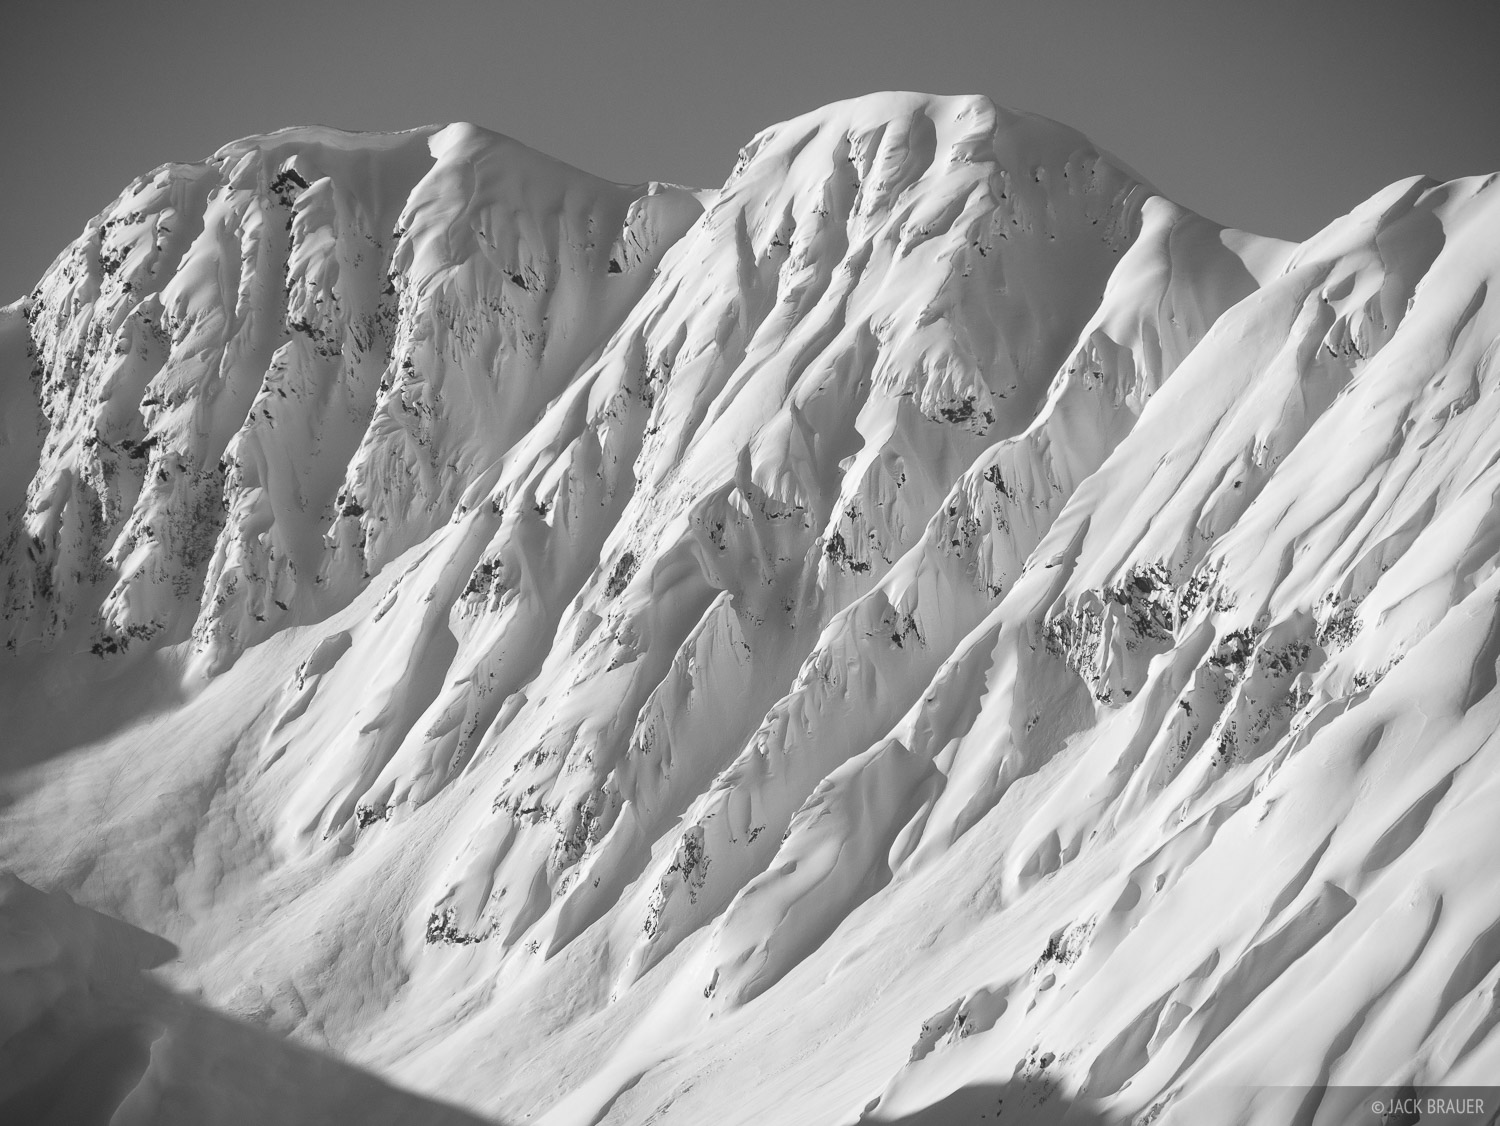 Alaska, Haines, bw, March, winter, 2016, black and white